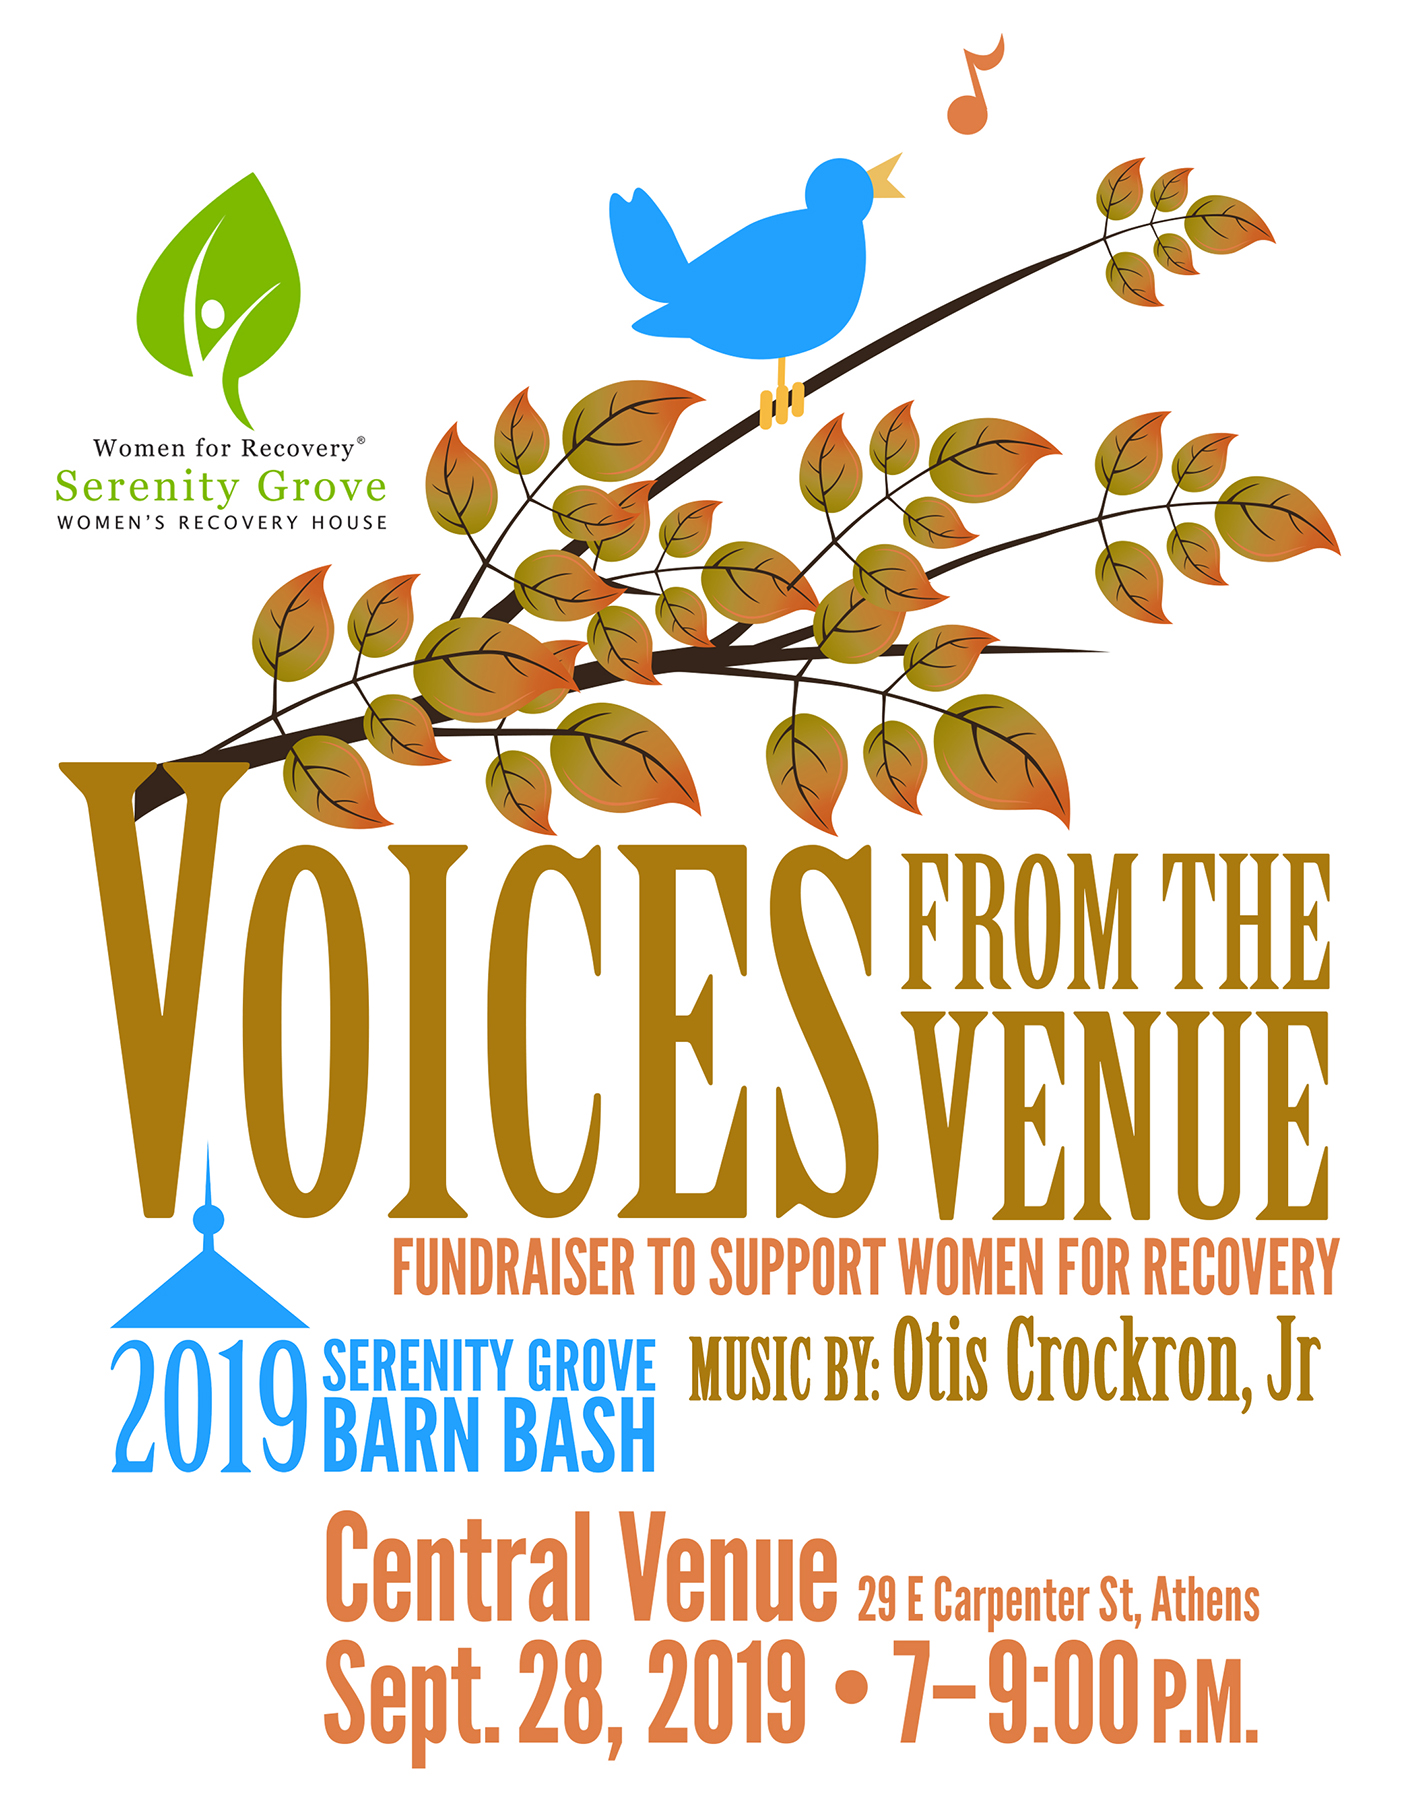 Voices from the venue flier